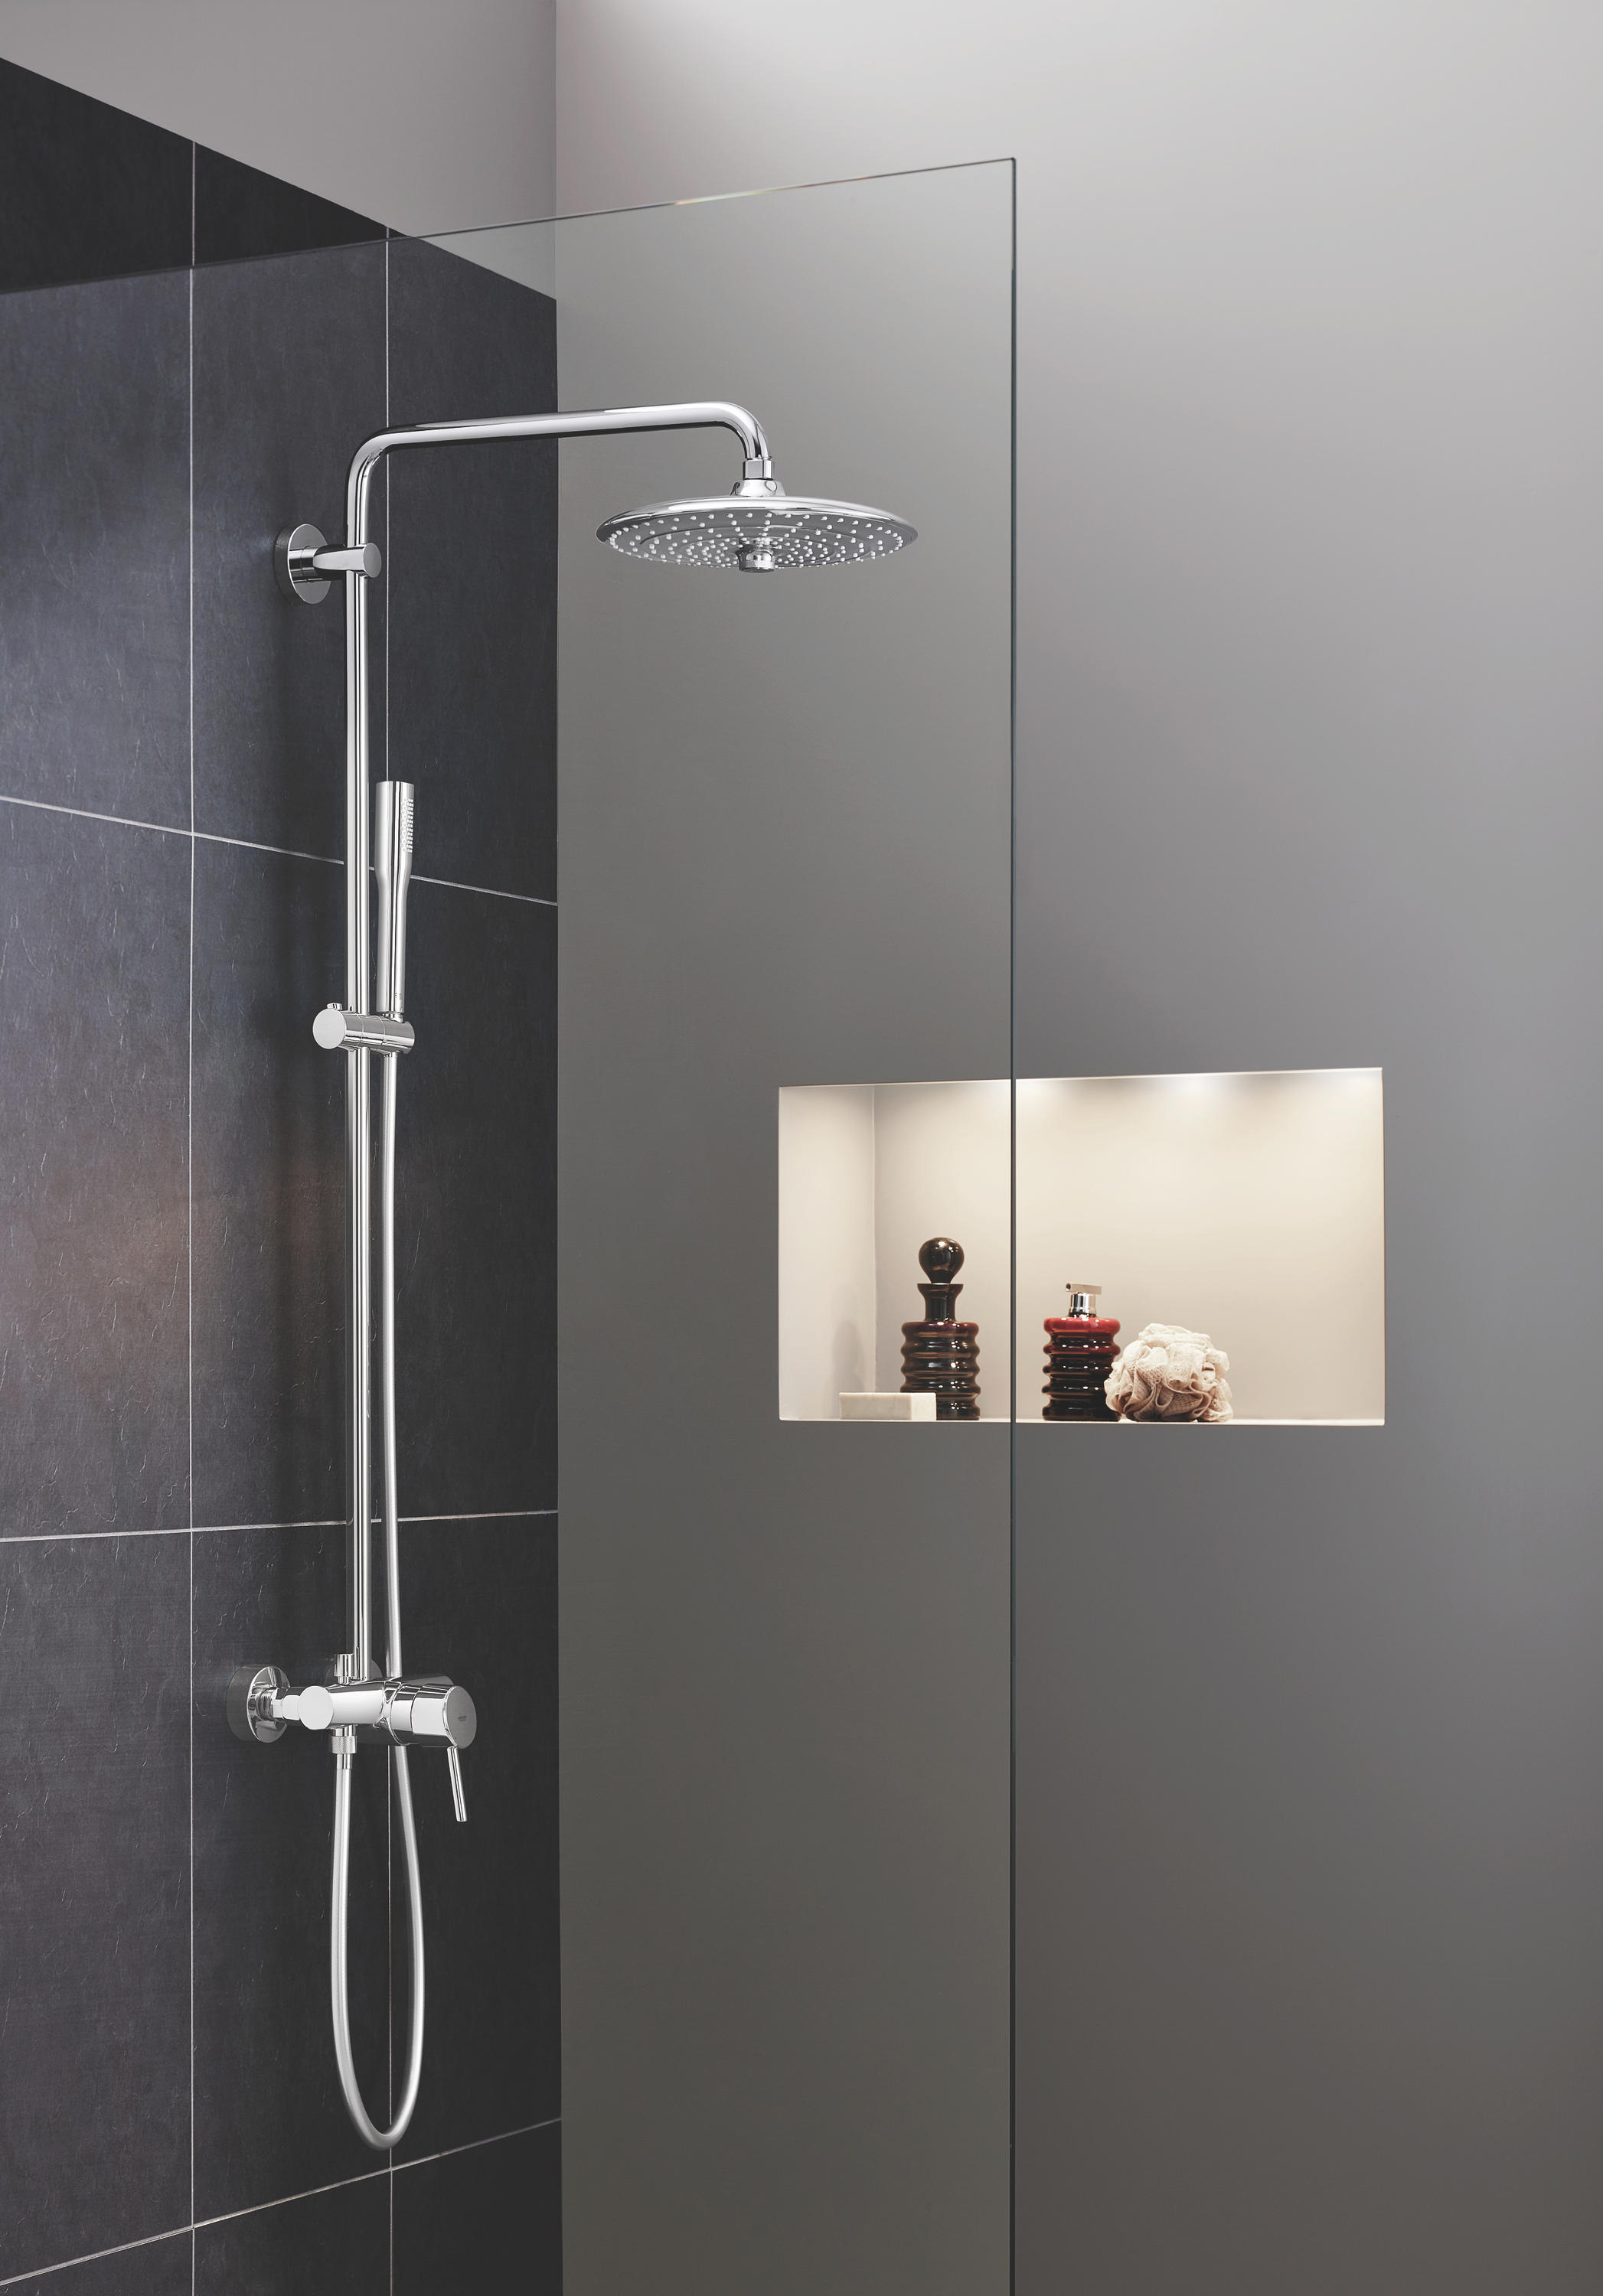 EUPHORIA XXL SYSTEM 310 SHOWER SYSTEM WITH THERMOSTATIC MIXER ...